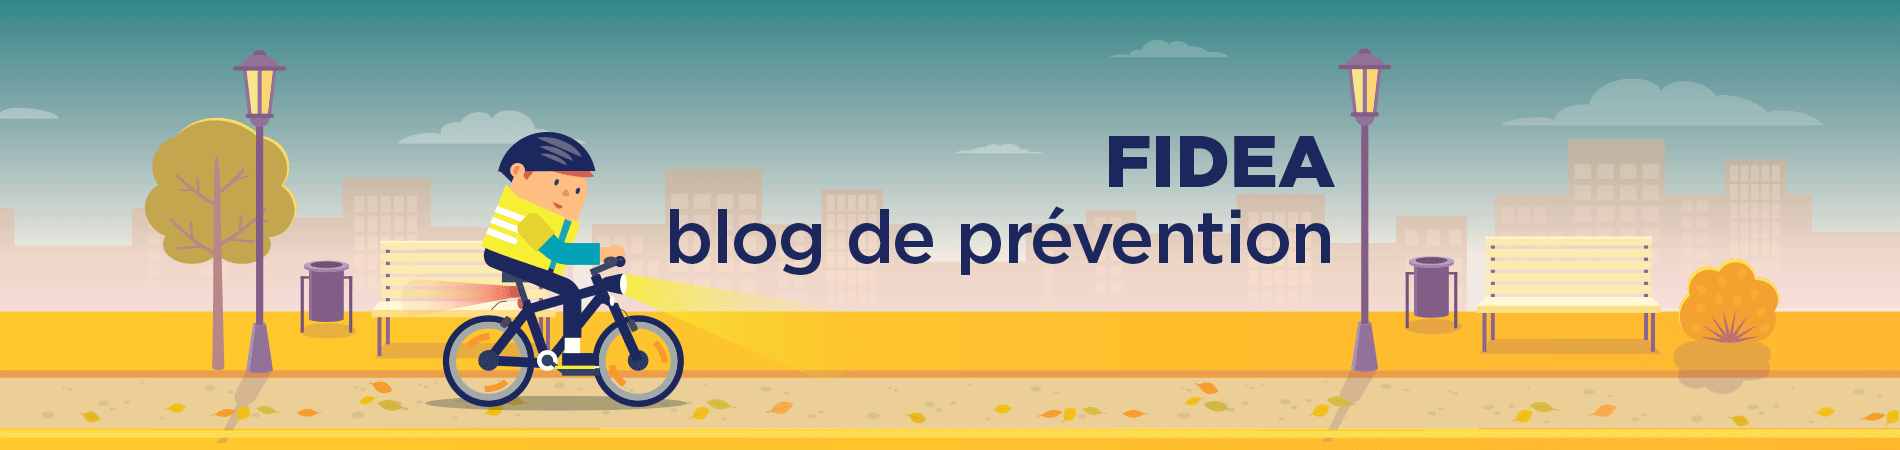 Fidea Prevention Automne